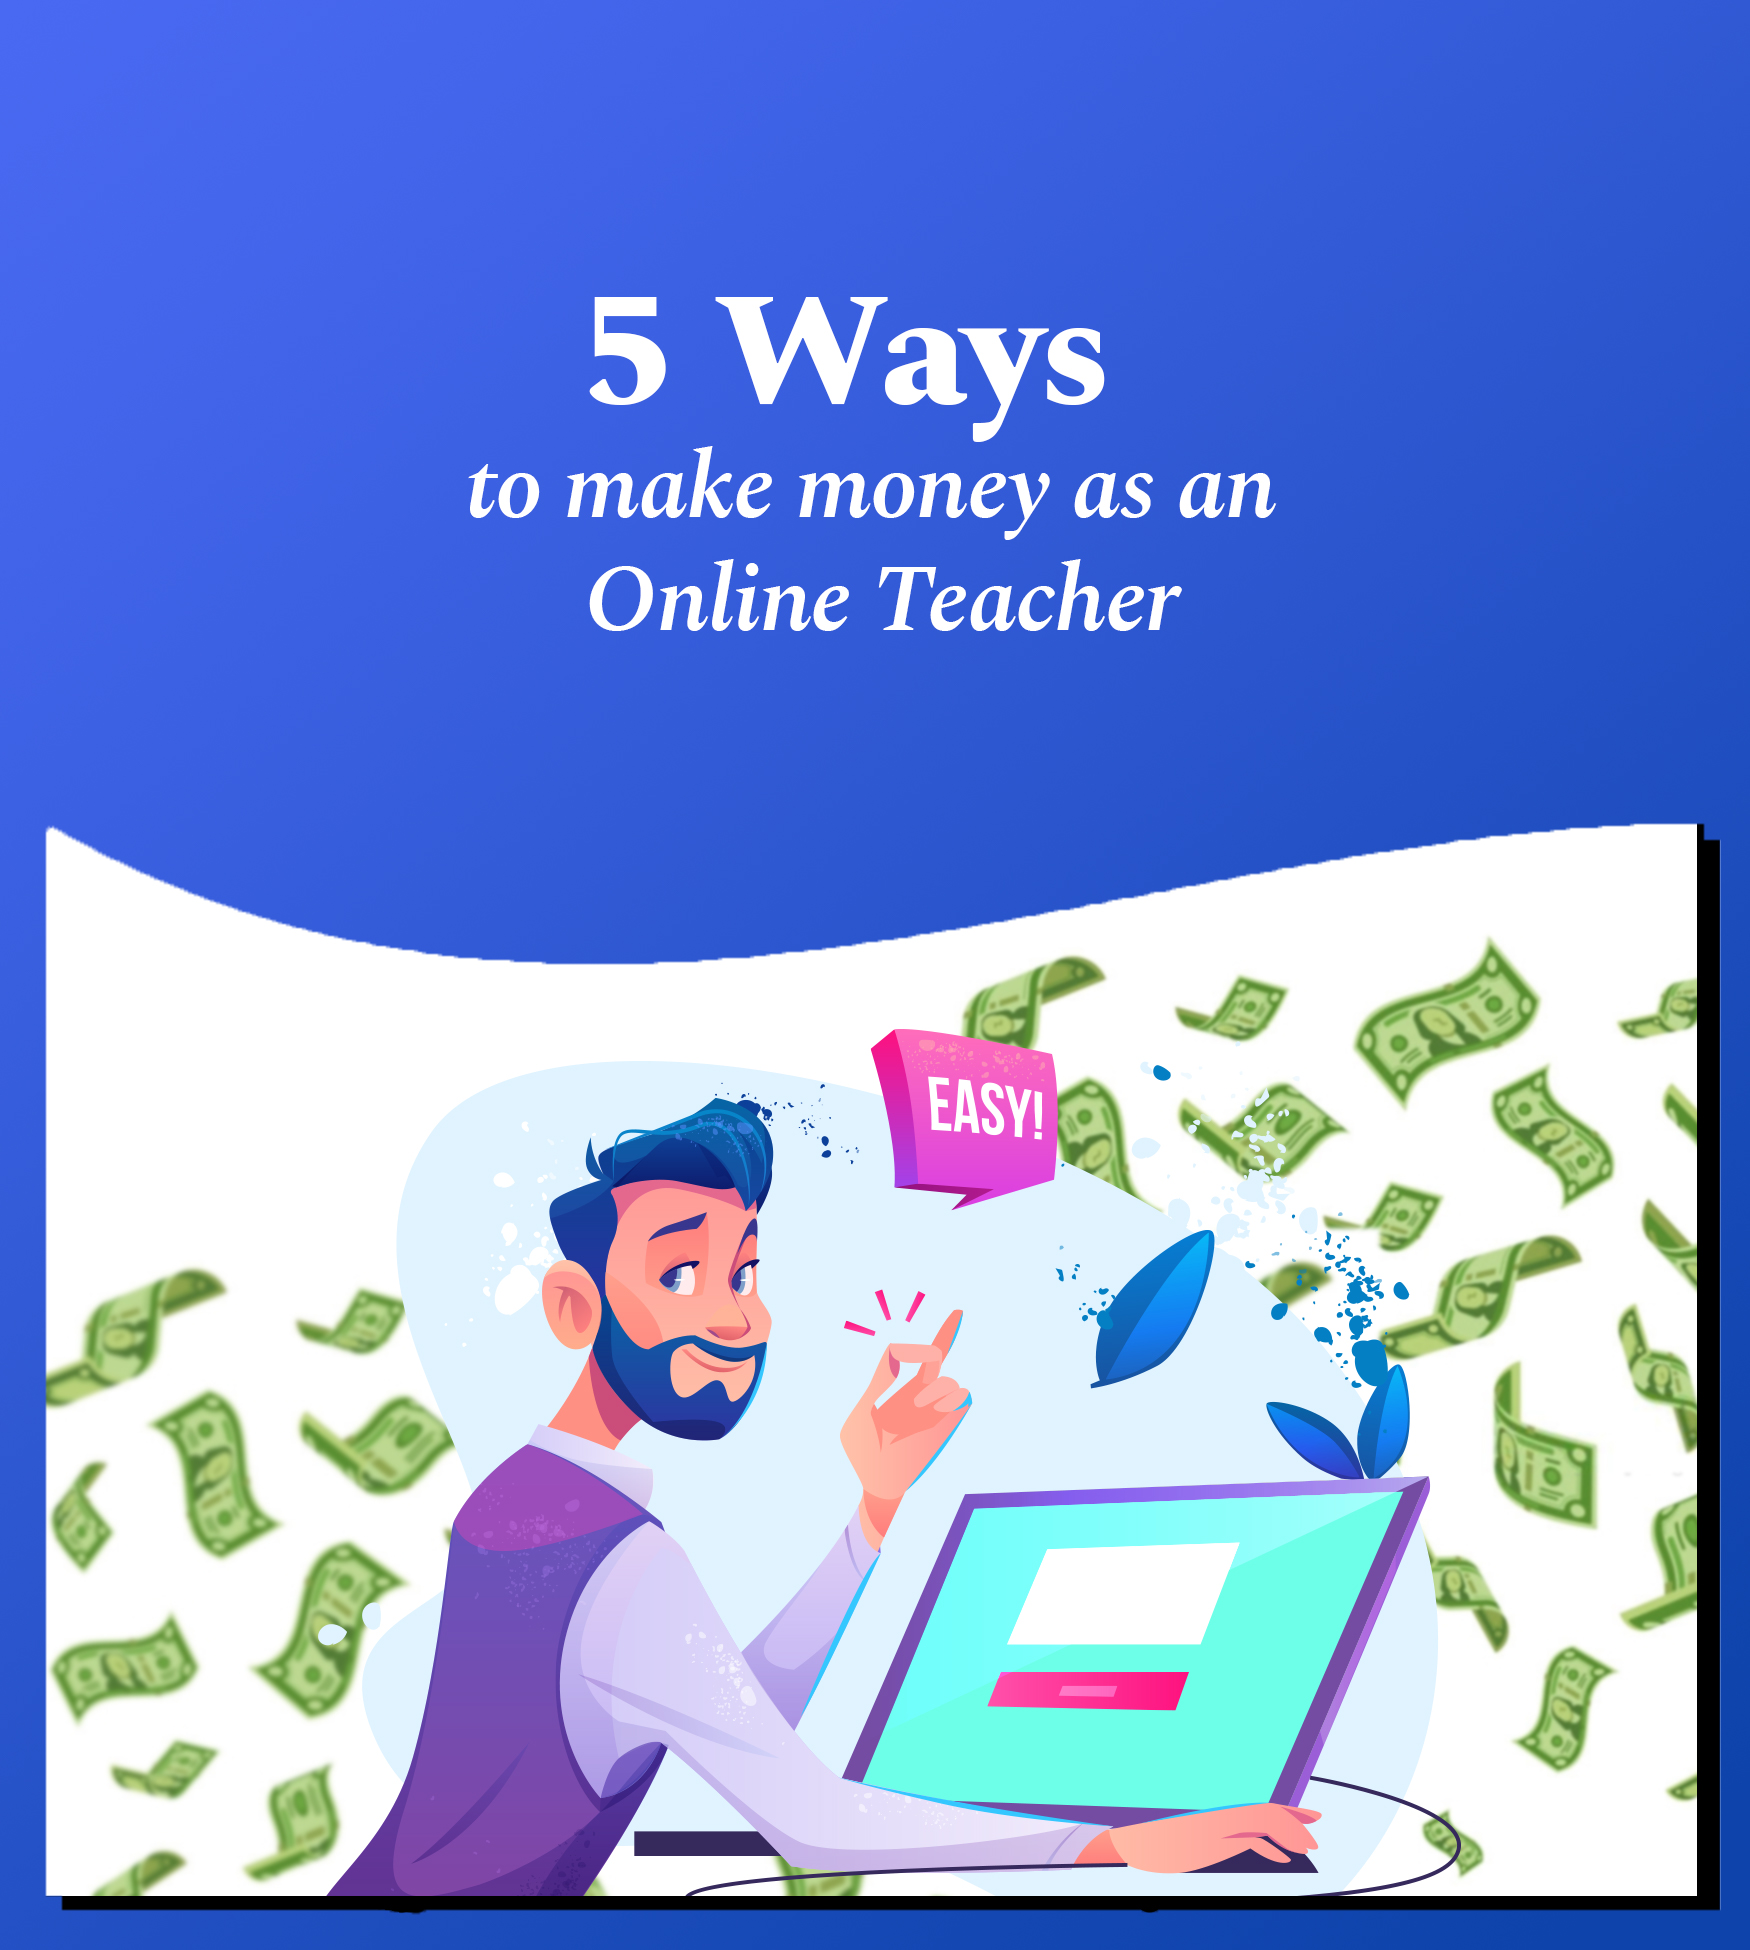 5 ways to make money as an online teacher 1